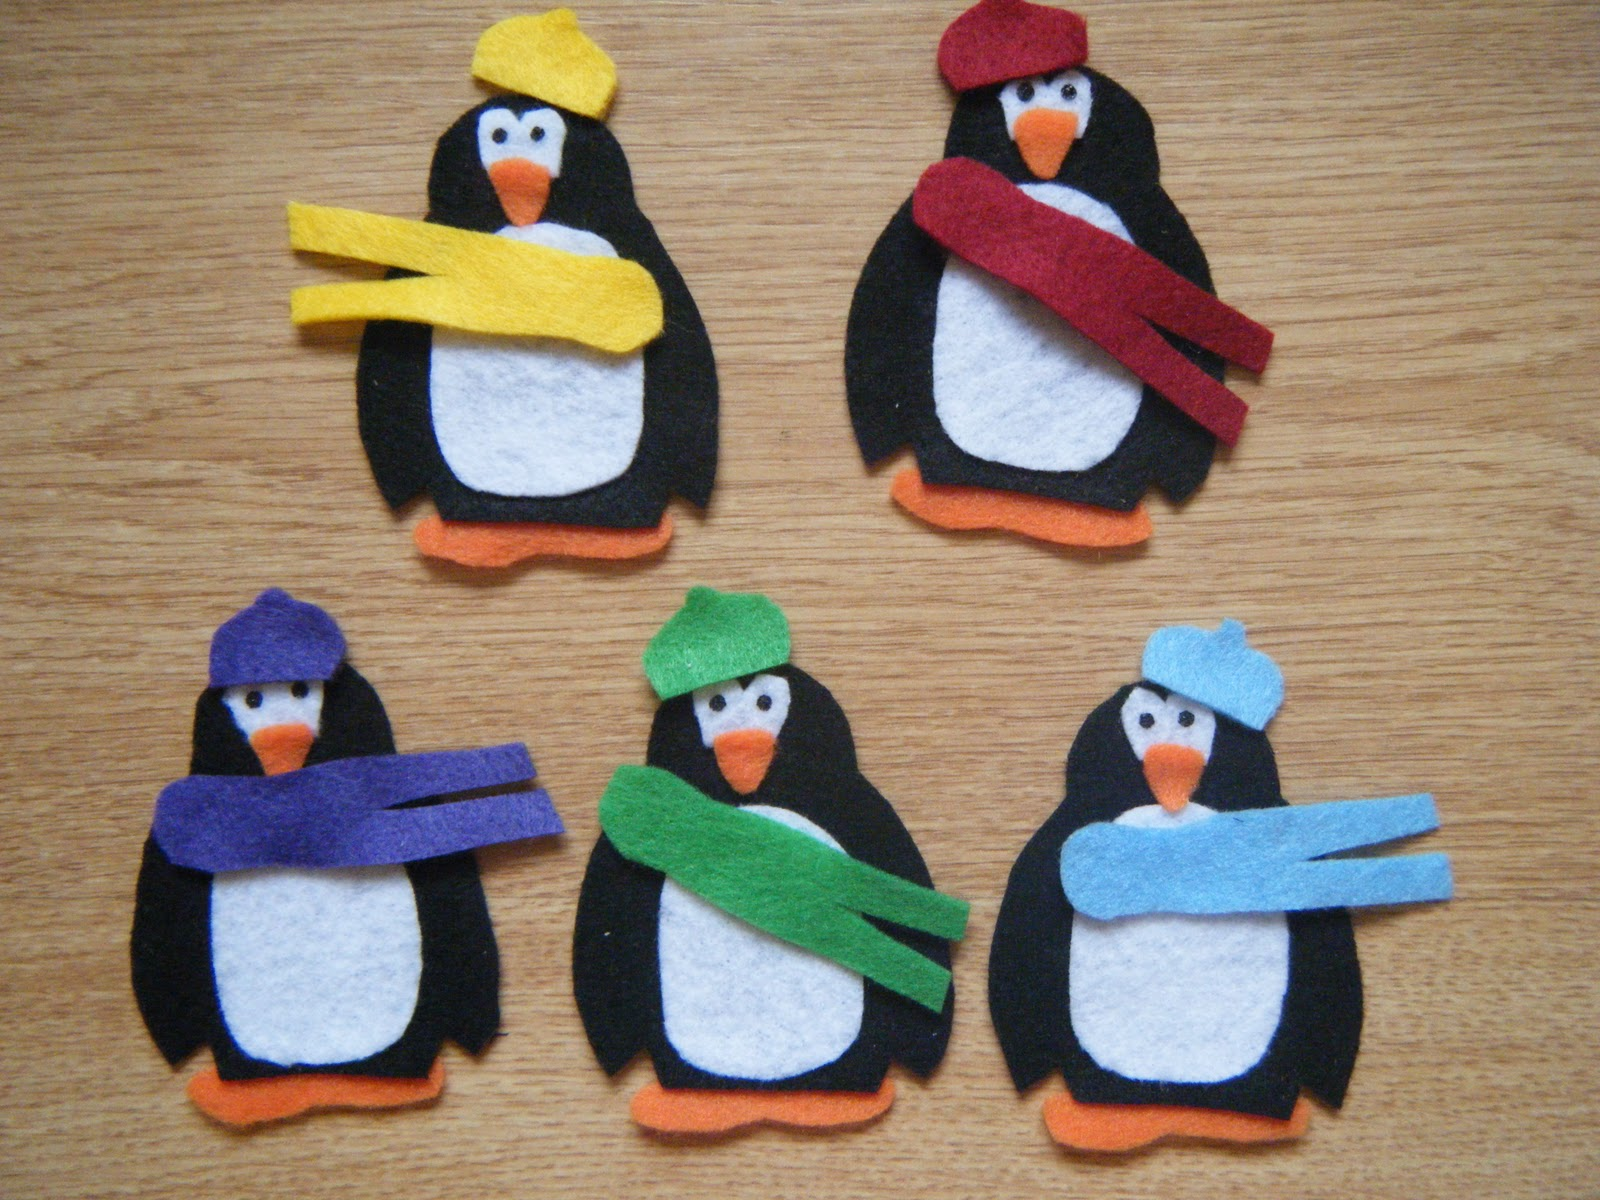 Felt Board Ideas Felt Board Winter Activities Matching Colors